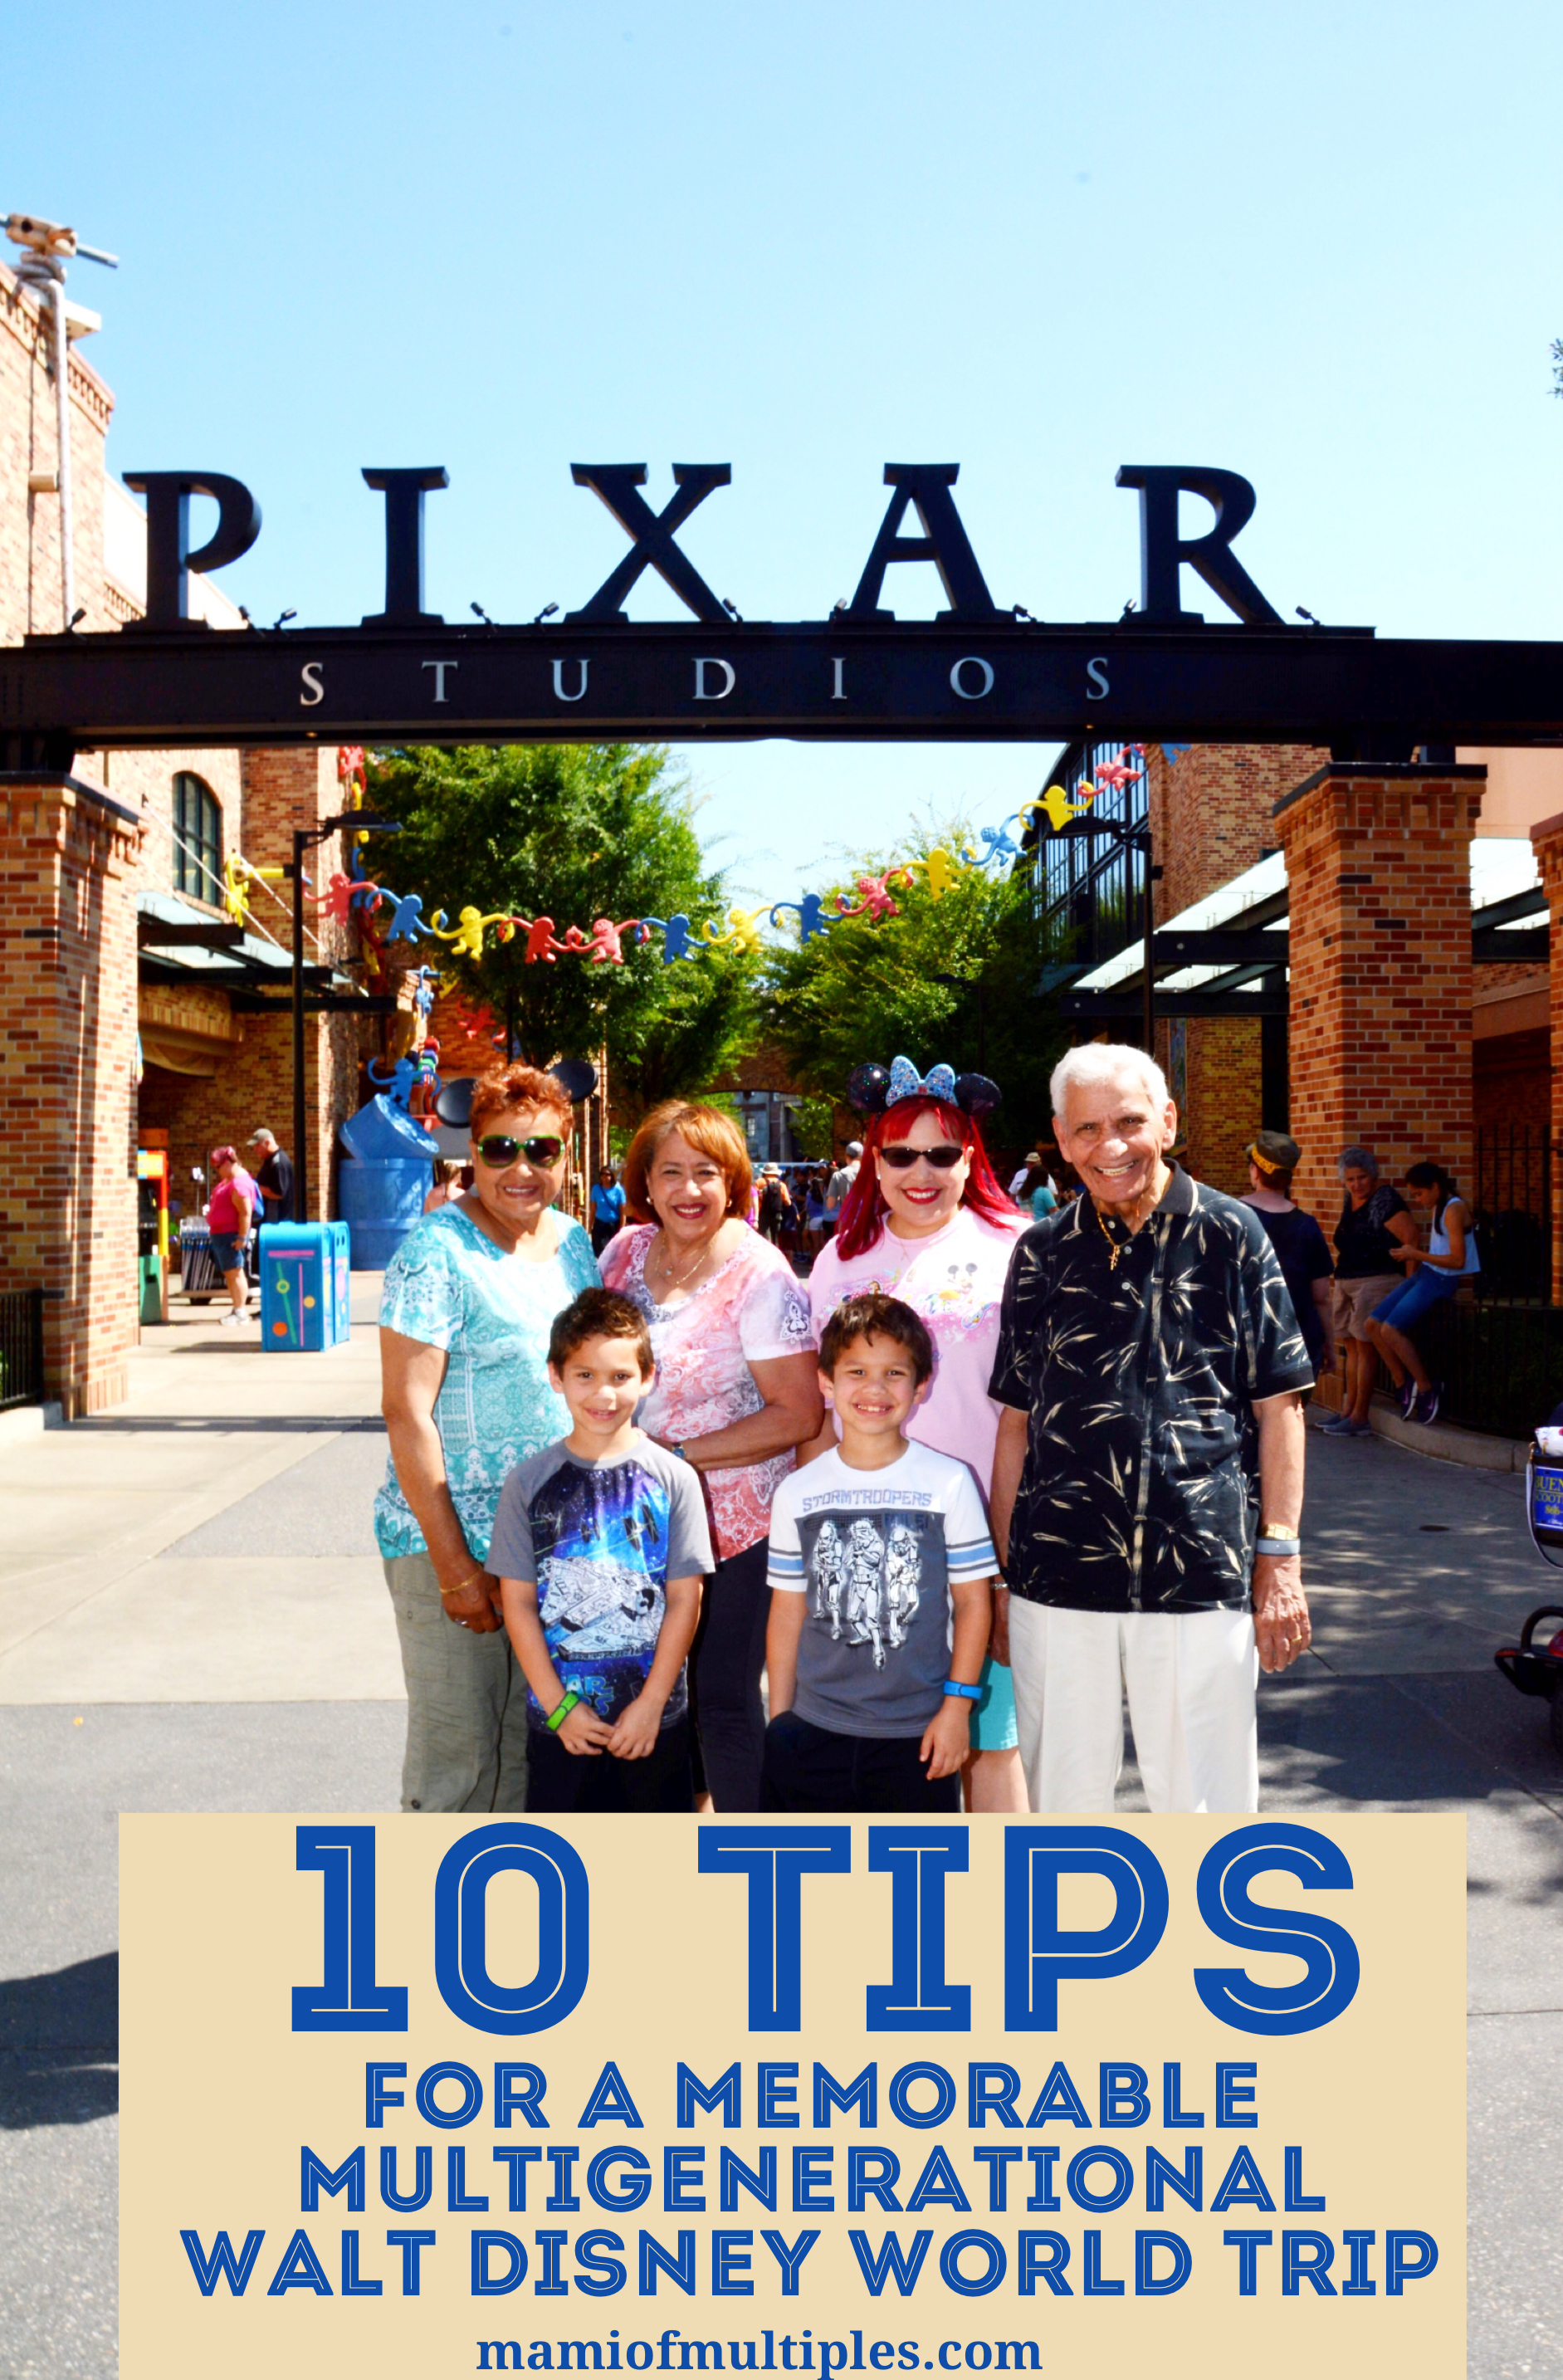 10 tips for a multigenerational walt disney world trip